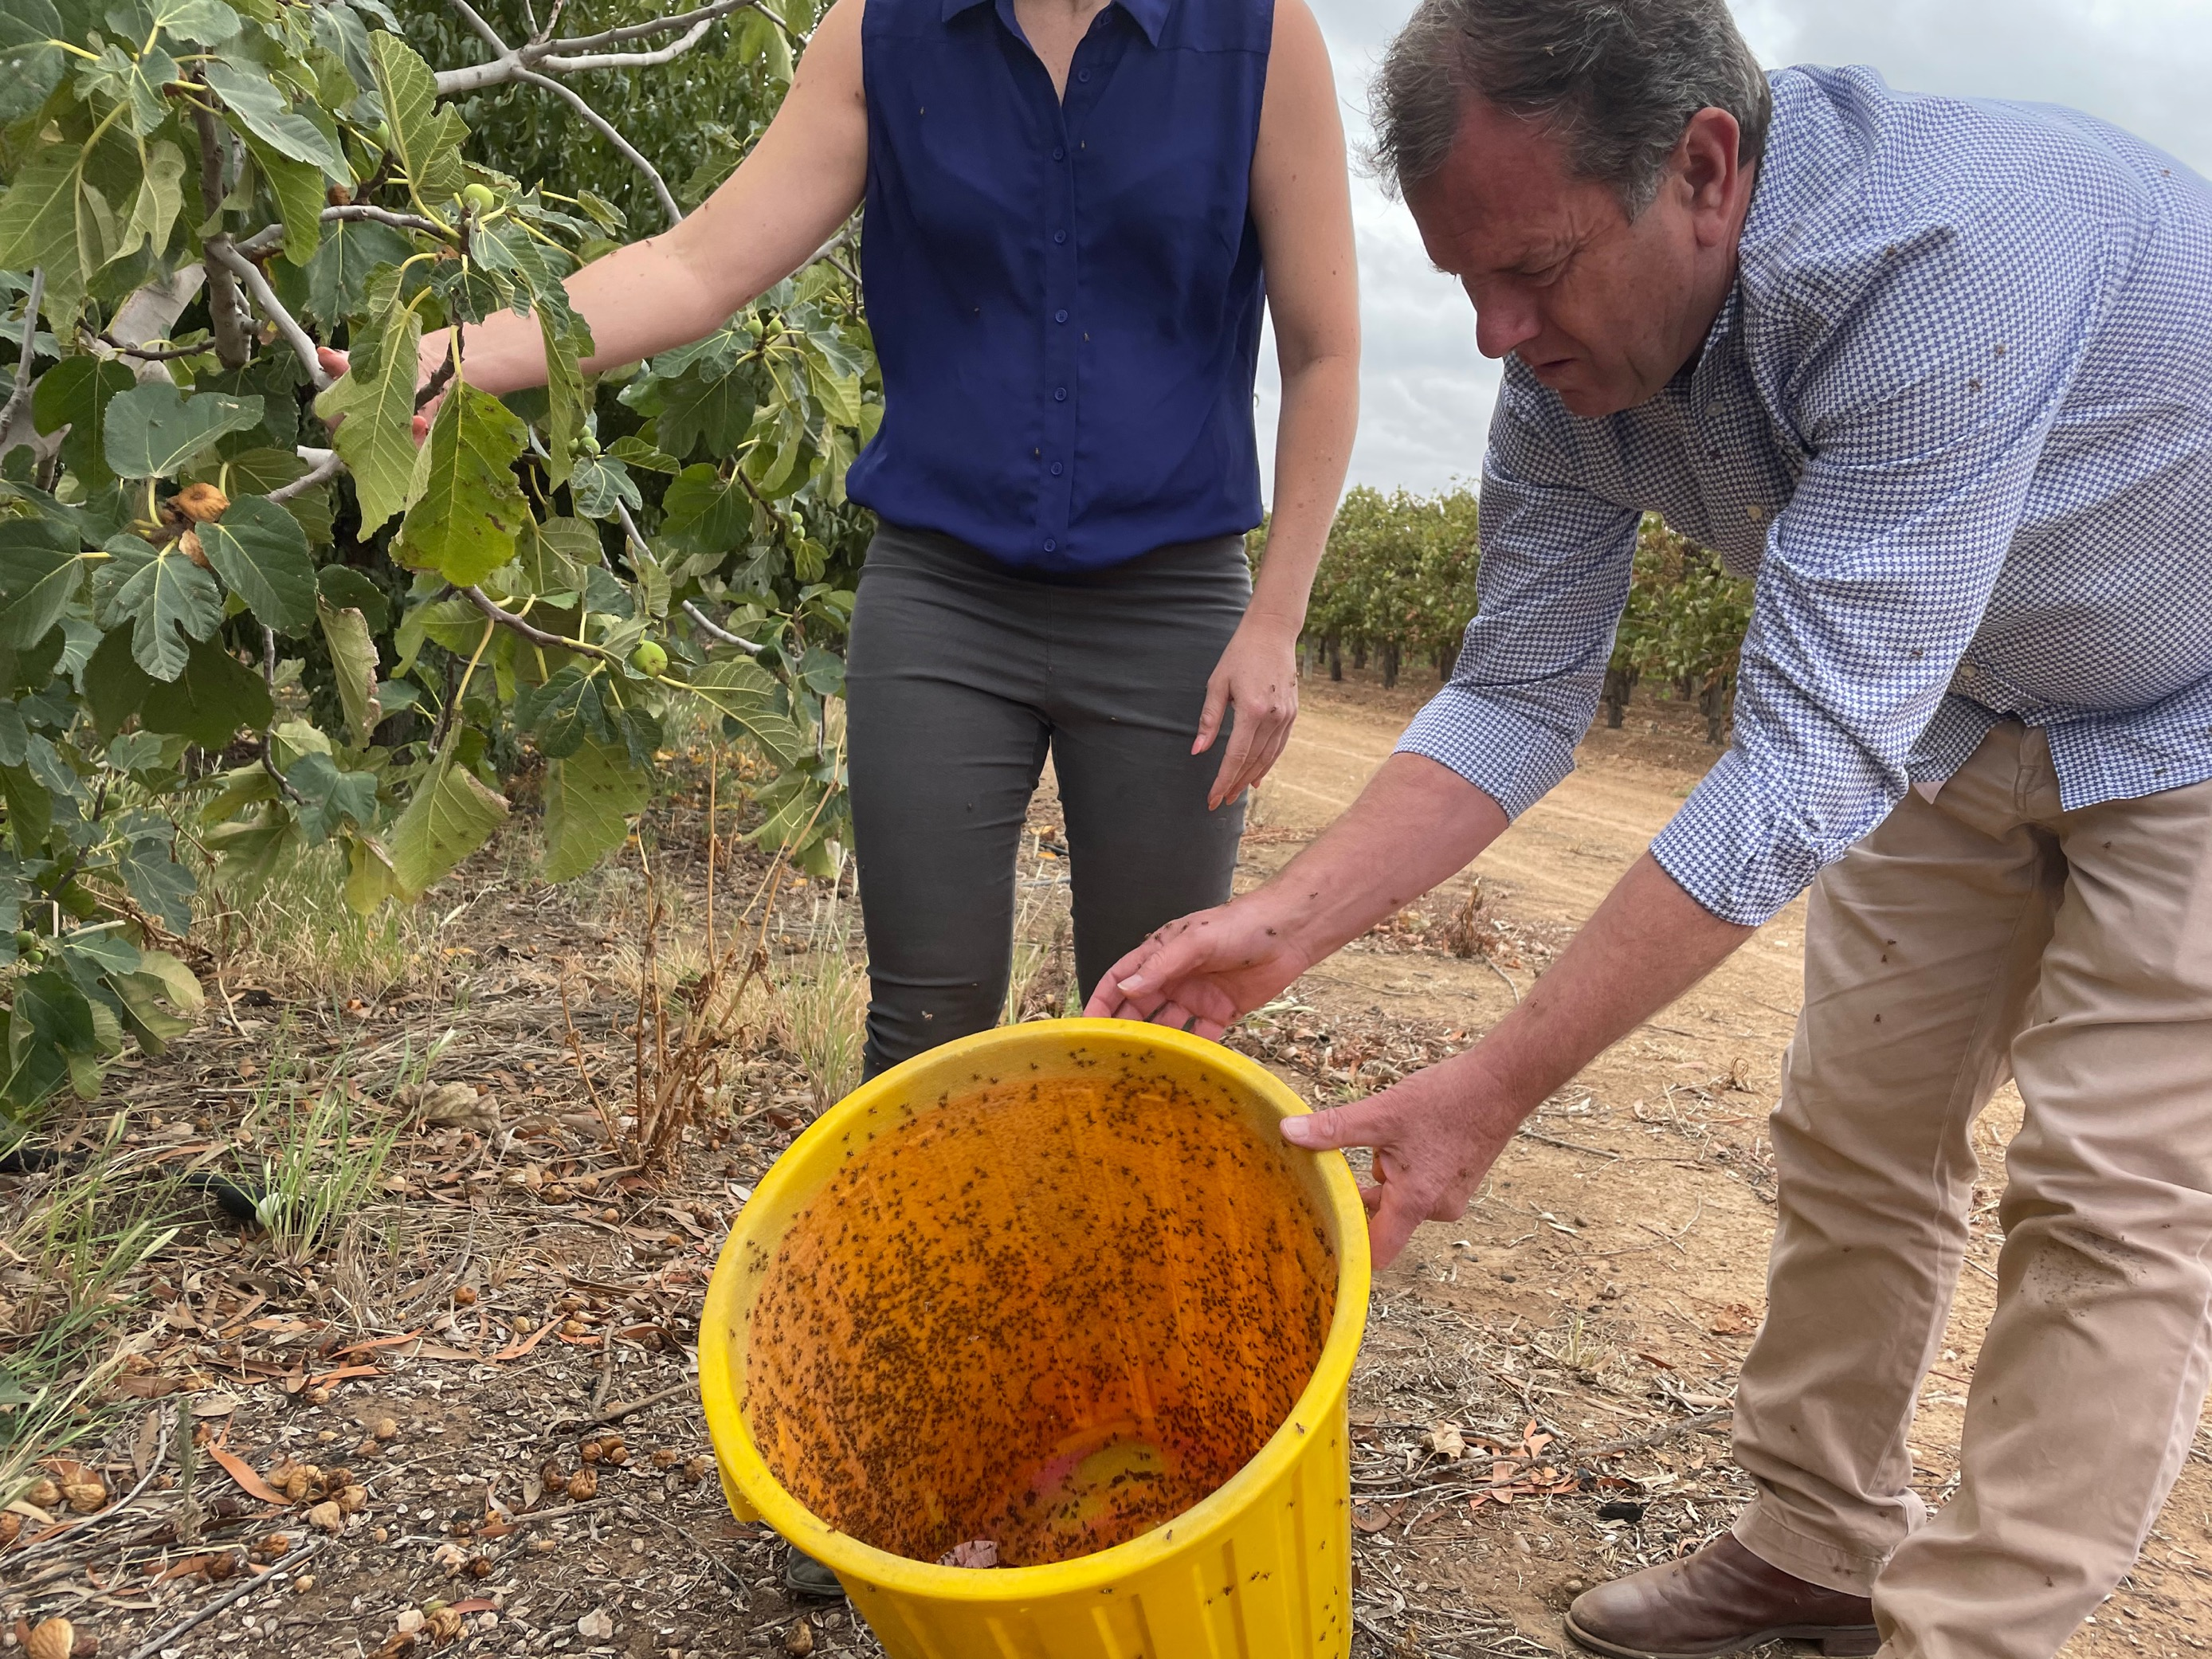 Two people standing outside holding a bucket, getting ready to release sterile fruit flies onto a plant.